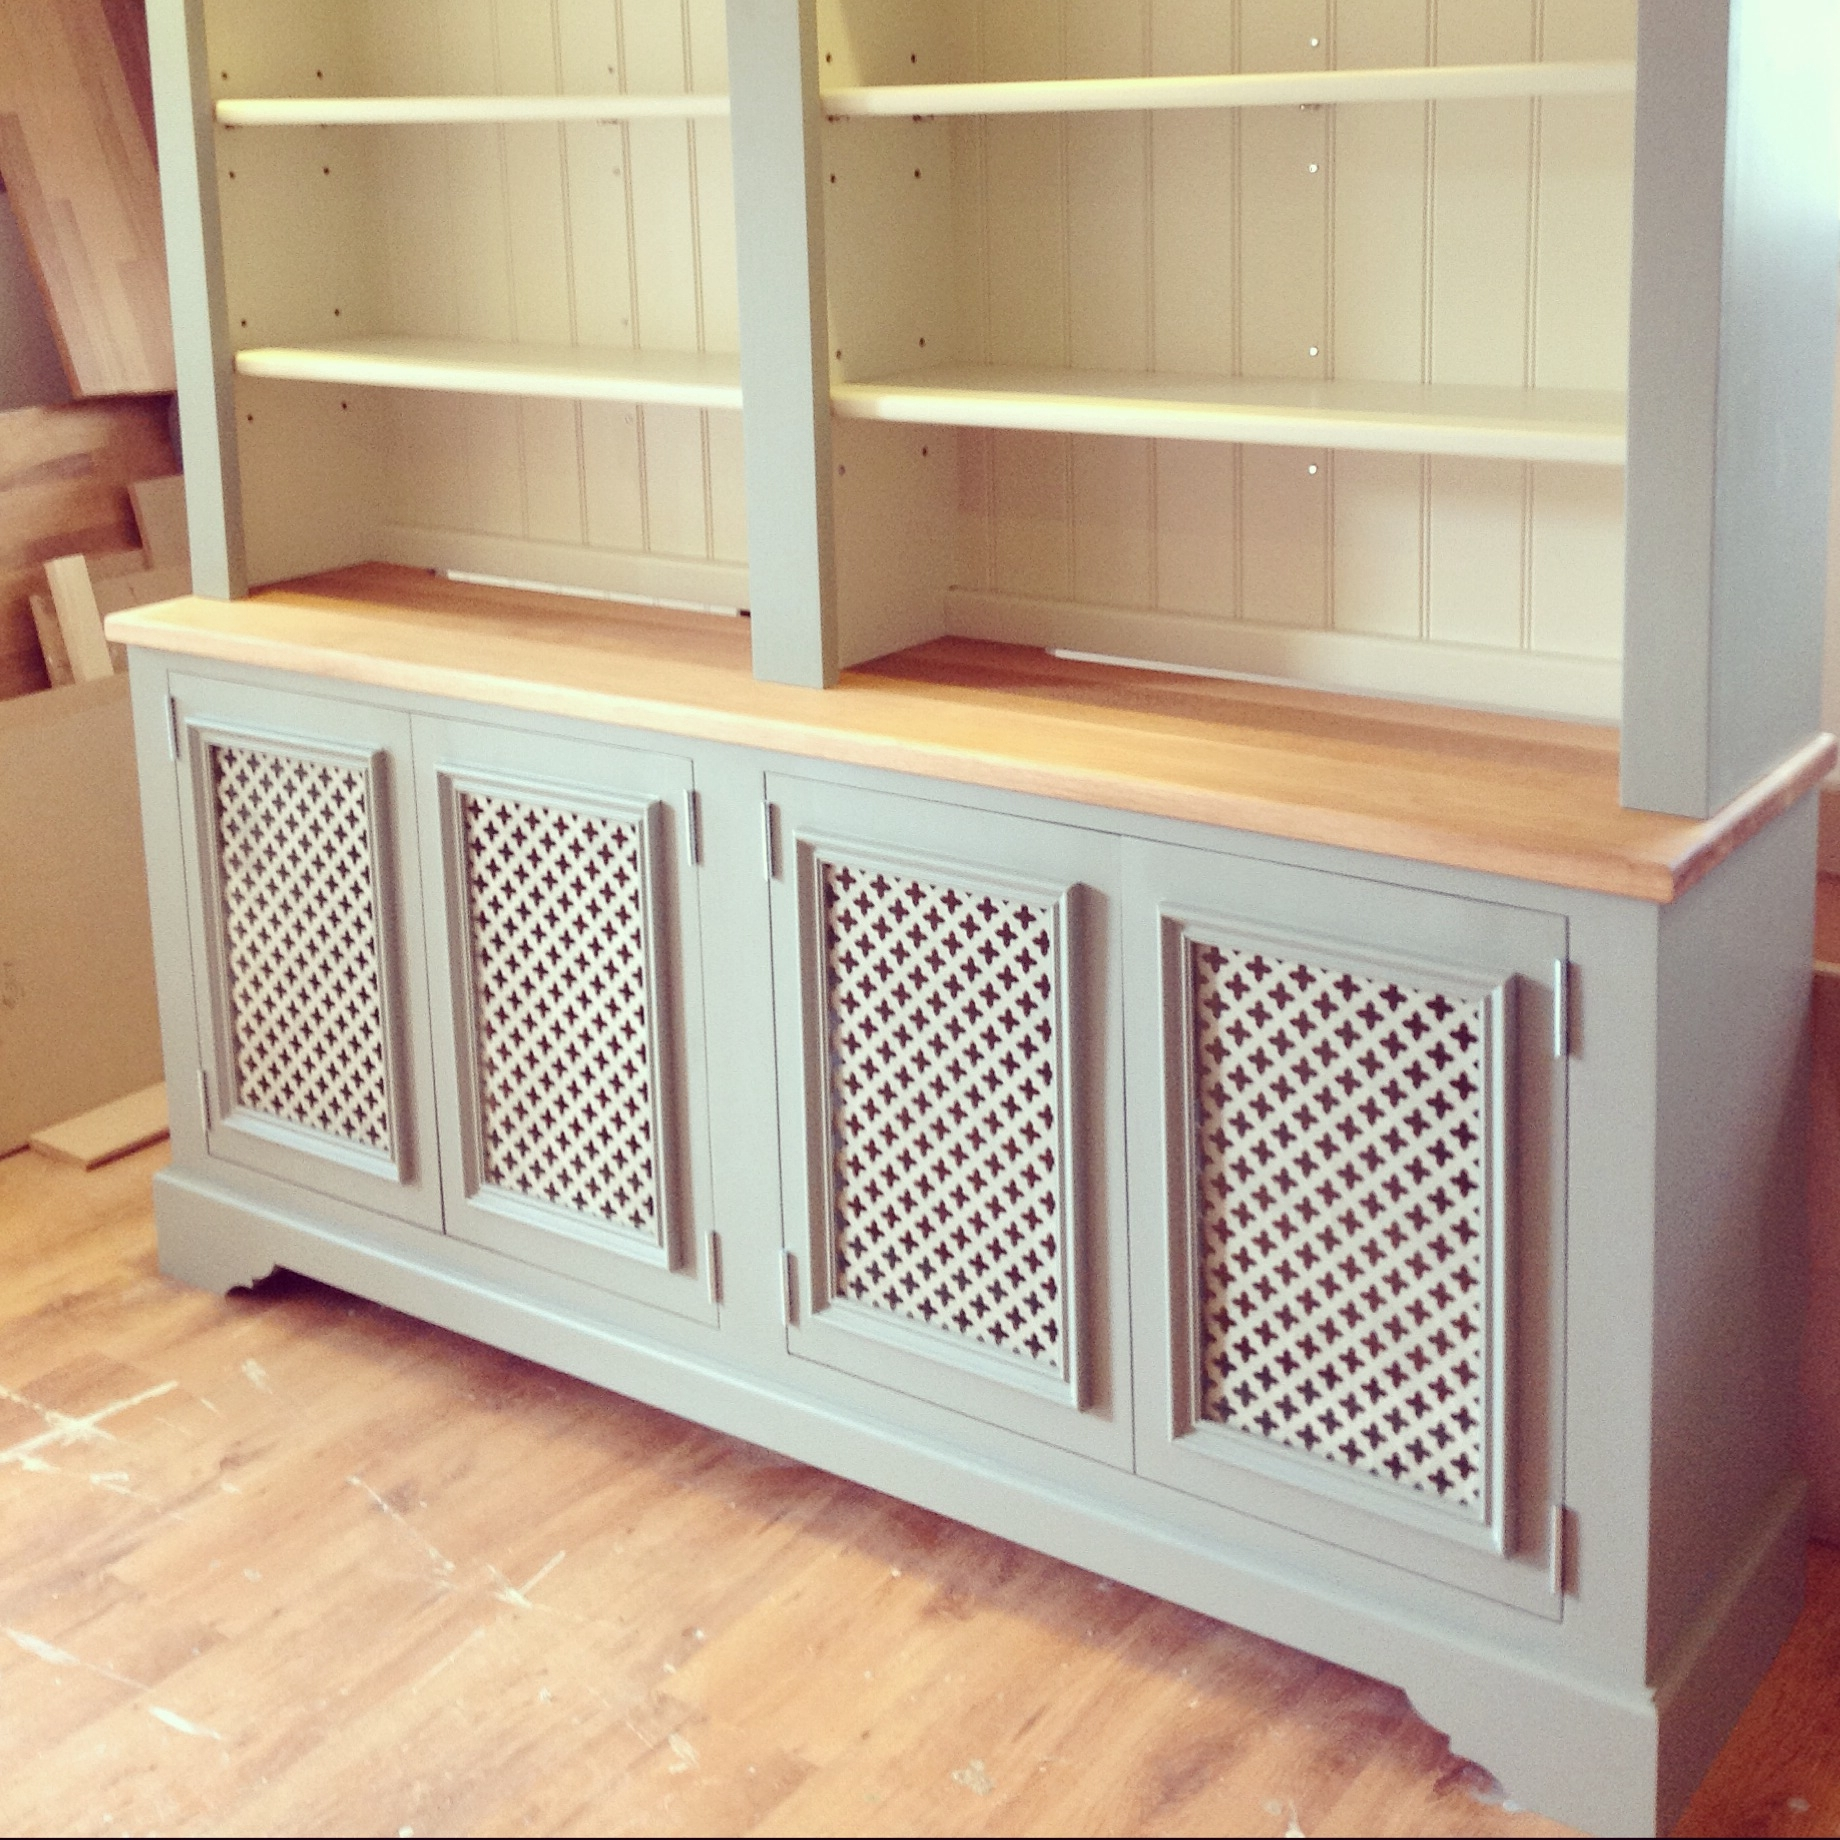 Trendy Radiator Cover / Dresser, Painted In Farrow & Ball {Lime White Within Radiator Cover With Bookcases Above (View 12 of 15)